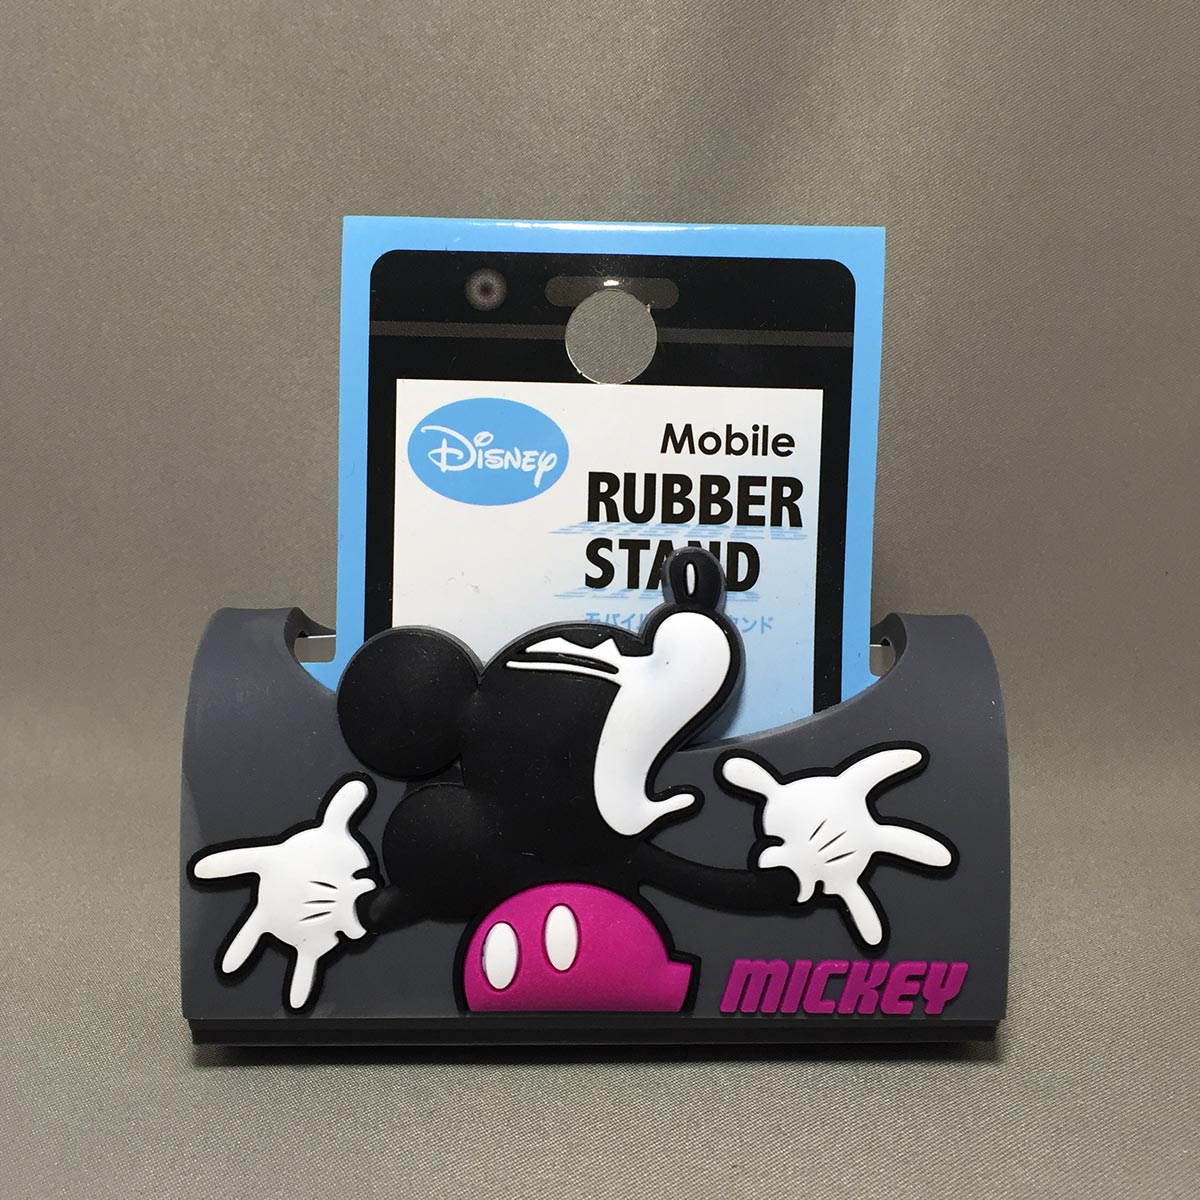 Mickey Mobile Rubber Stand - Front view with packaging